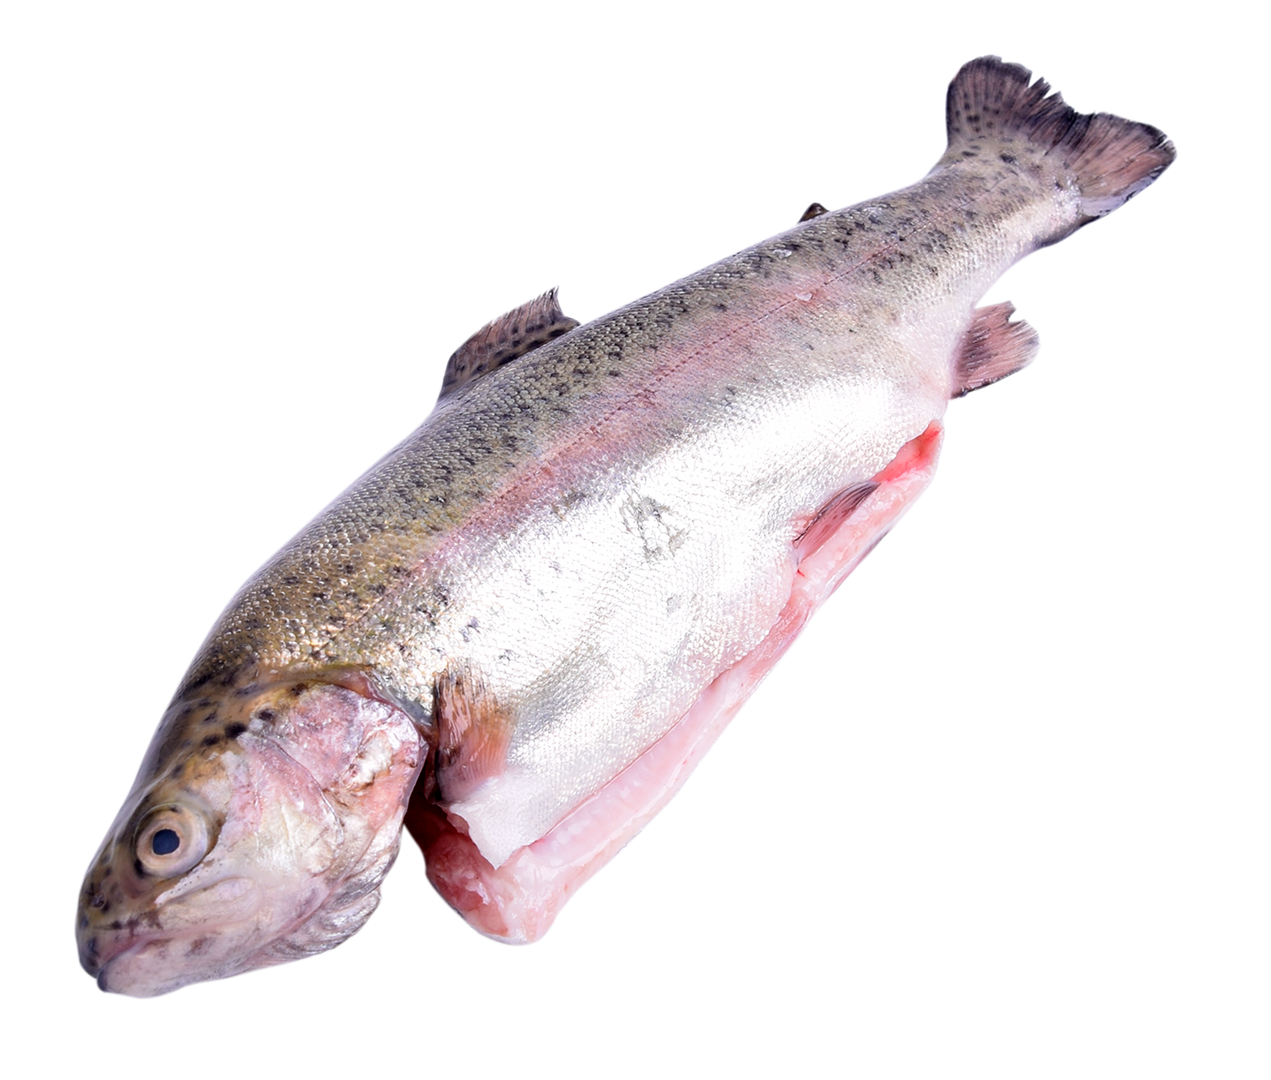 Productafbeelding FOREL VERS 200/240 GRAM 20-22